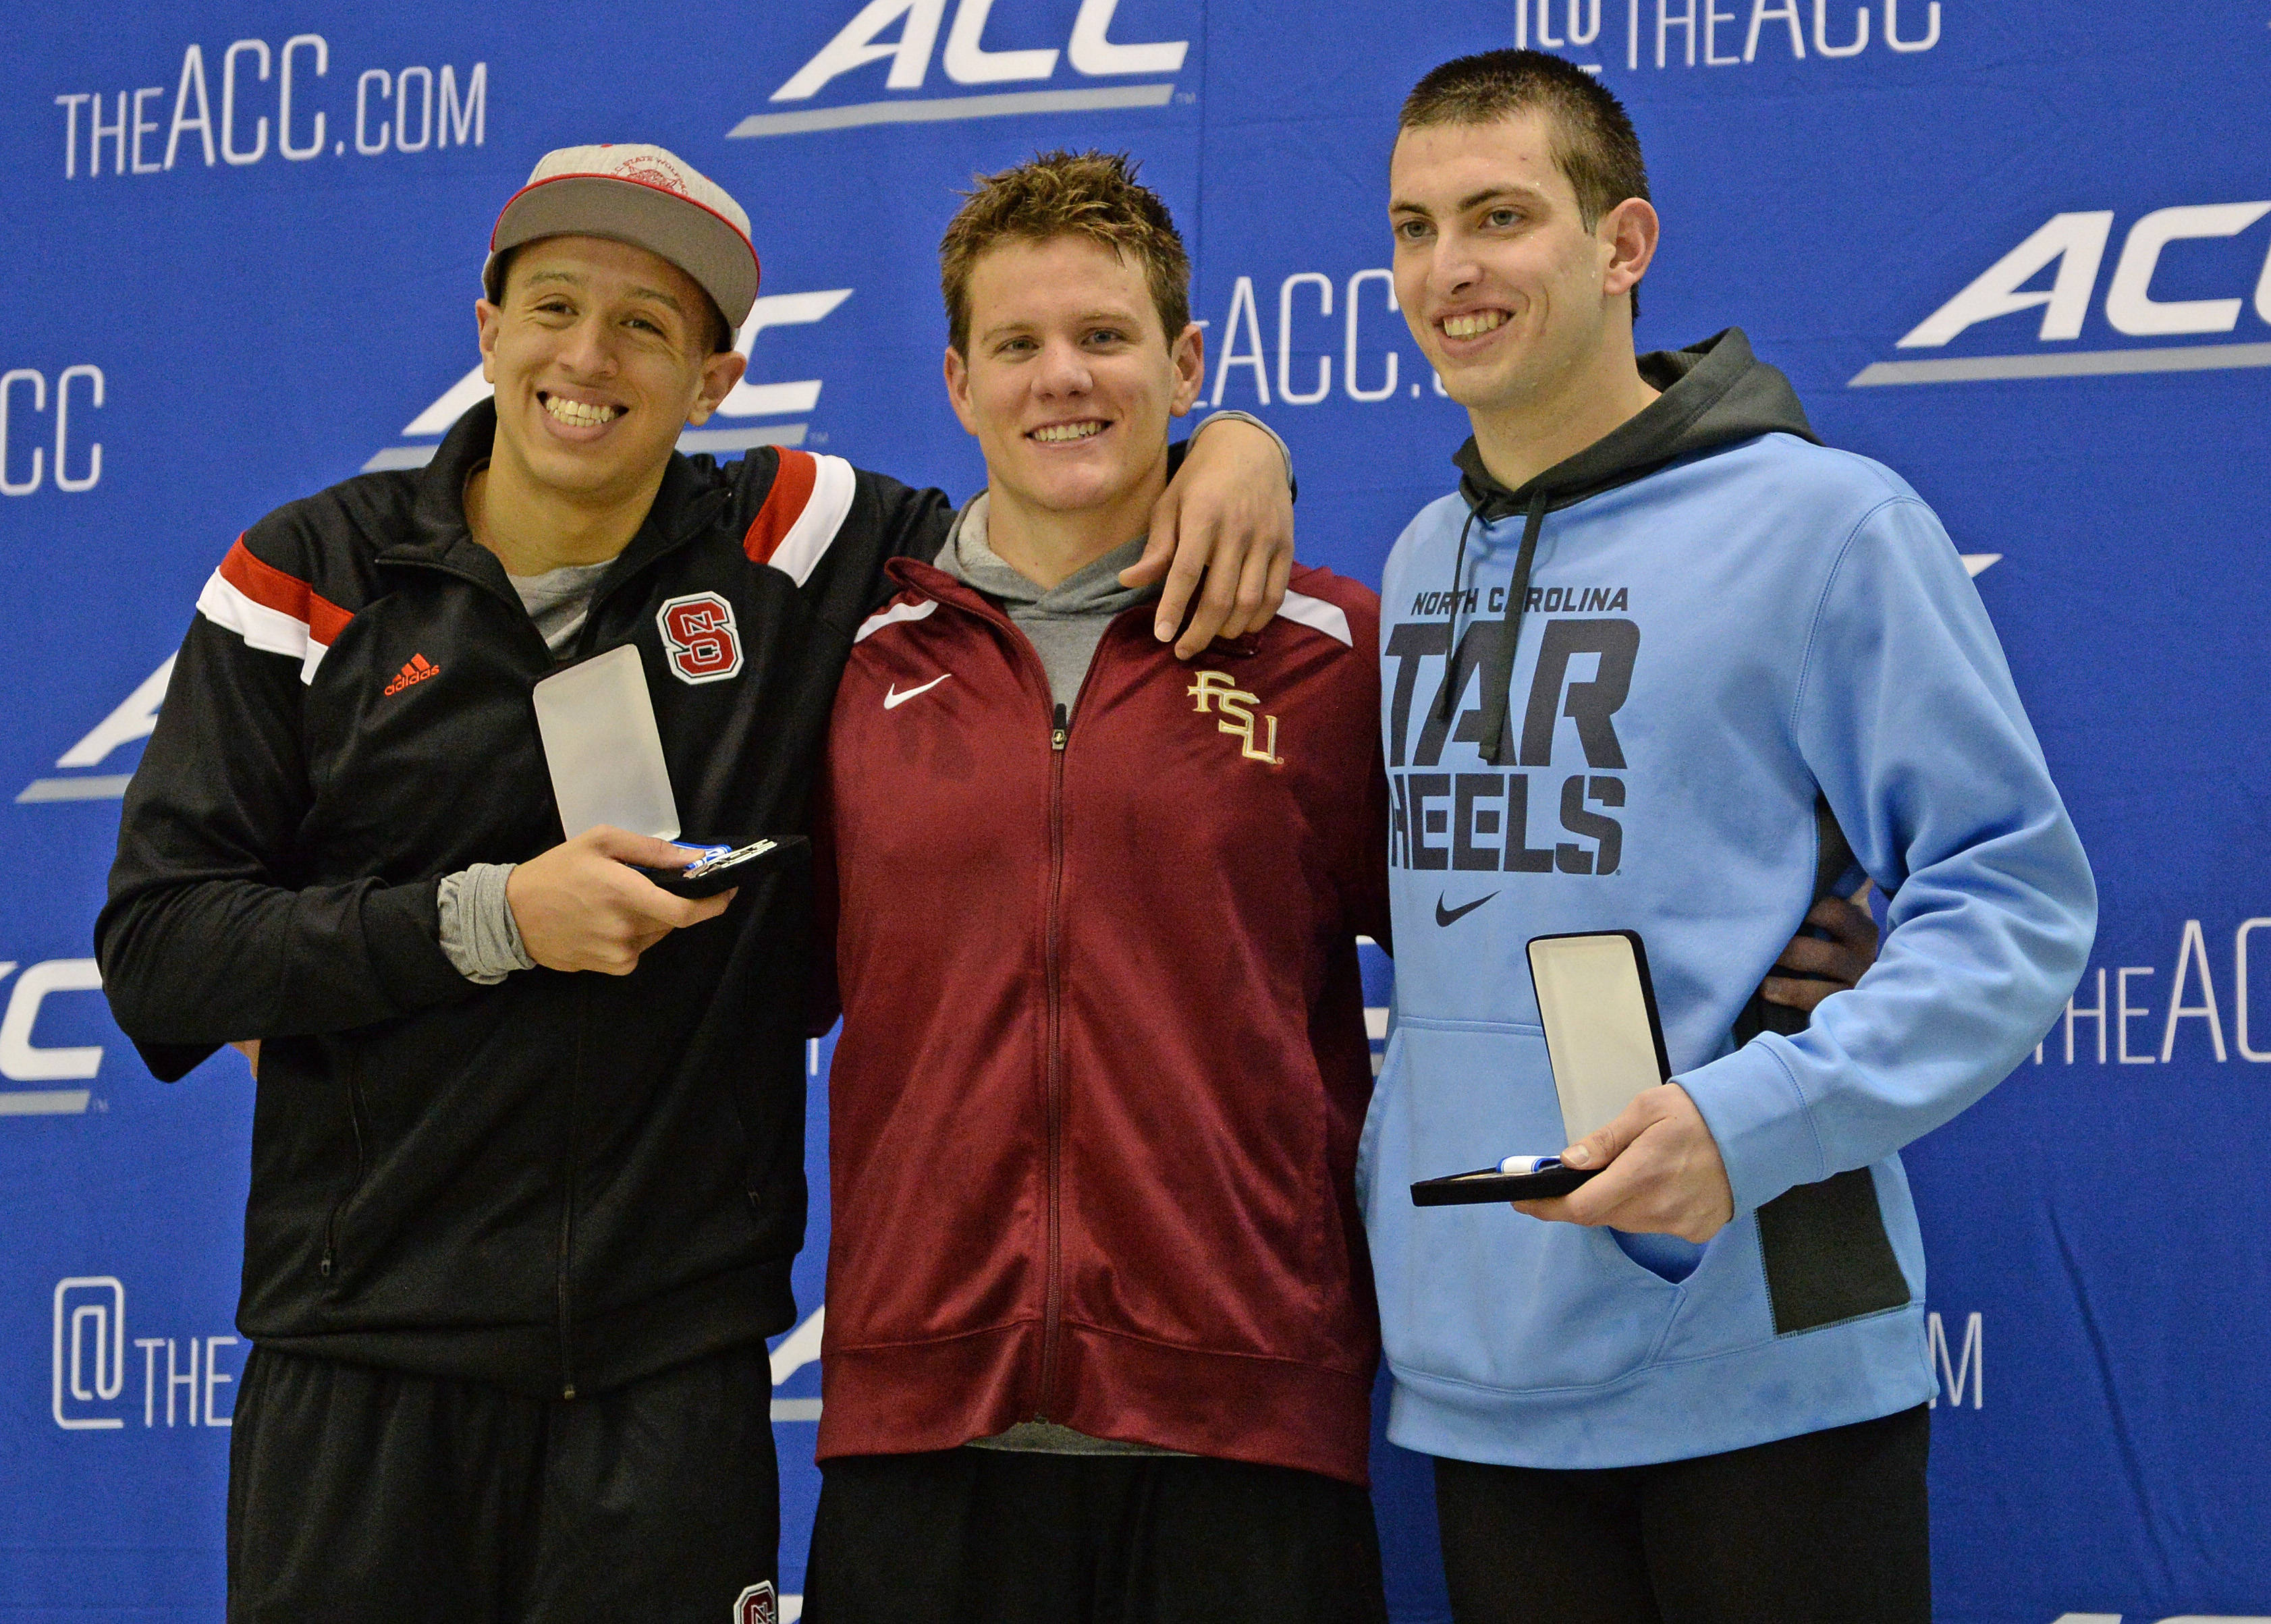 The 200 fly medalists - Mitch White